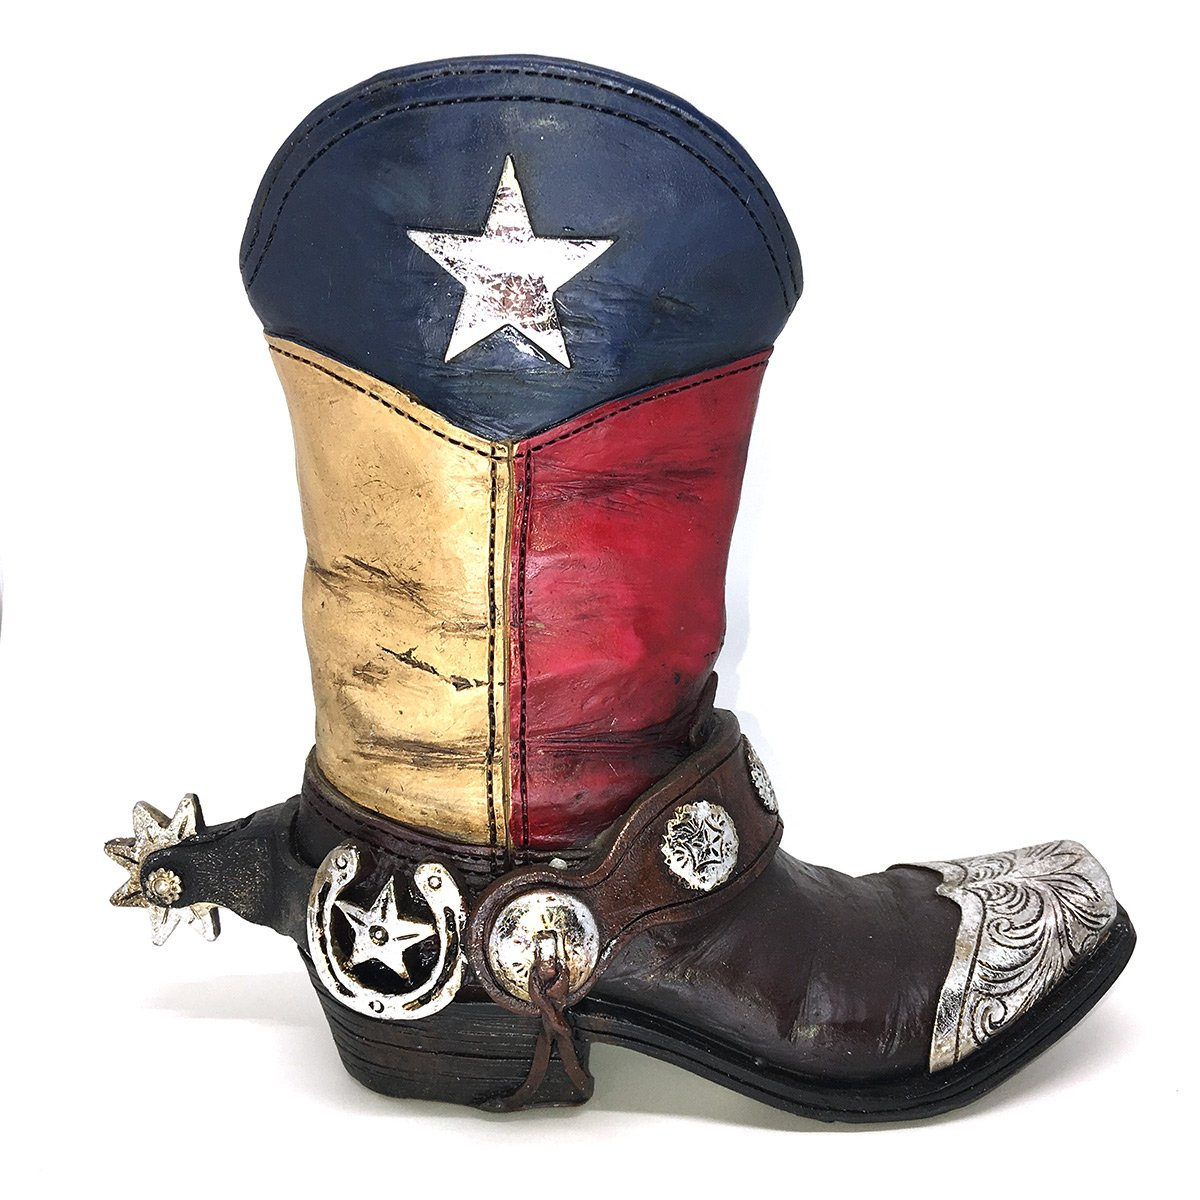 Texas Lone Star Cowboy Boot with Spur Small Vase Planter for Western Decor by Colors of Rainbow (Image #1)